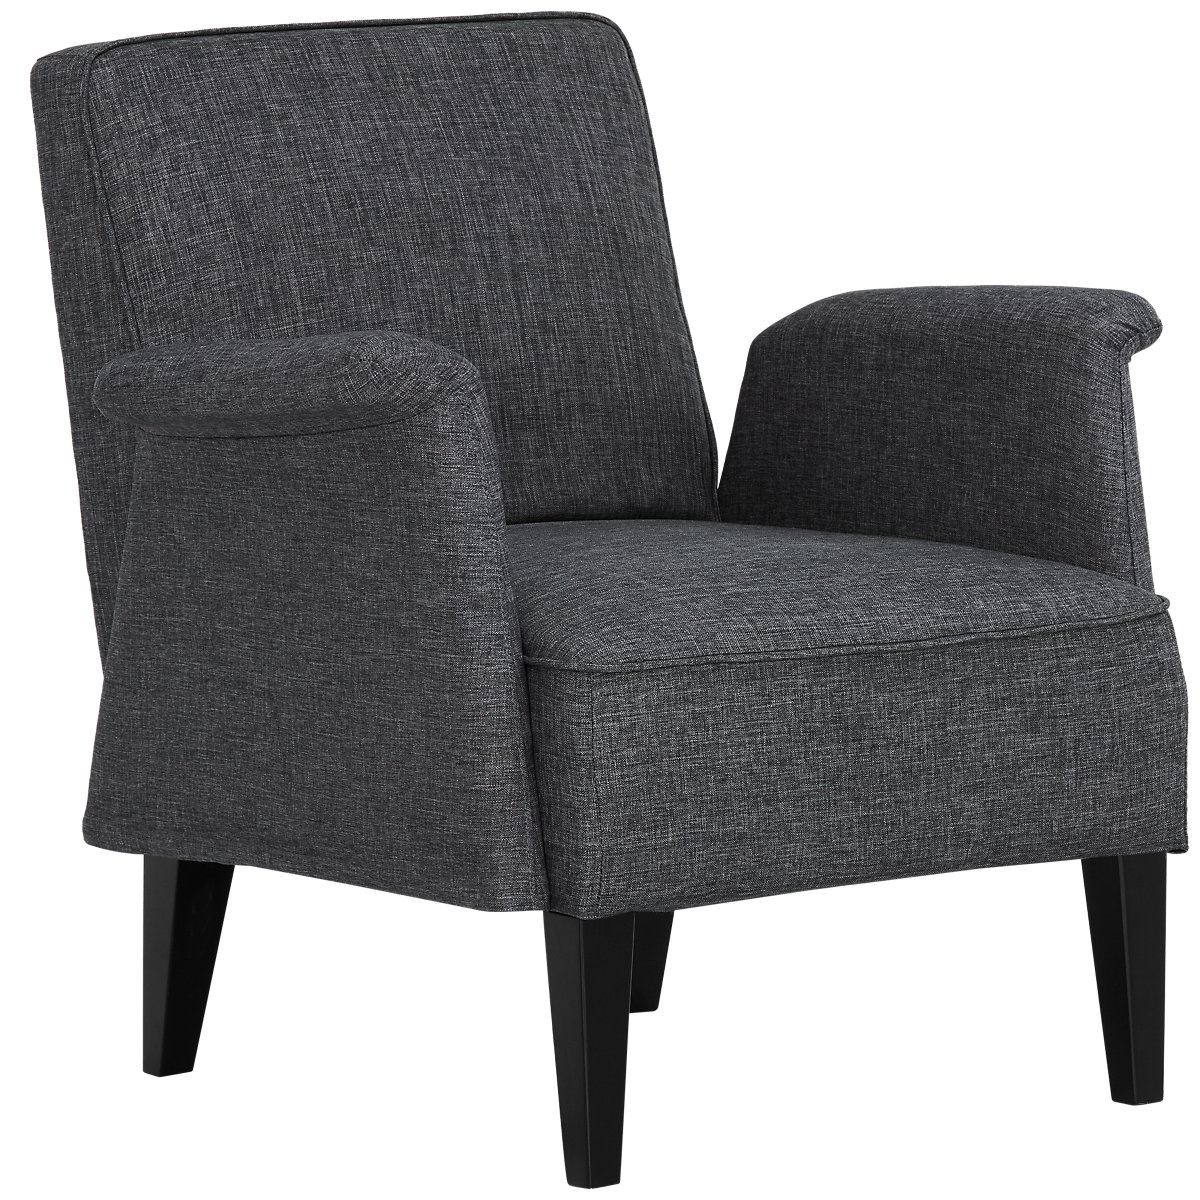 city furniture  home accents  decor  chairs  chaises - nigel dark gray accent chair